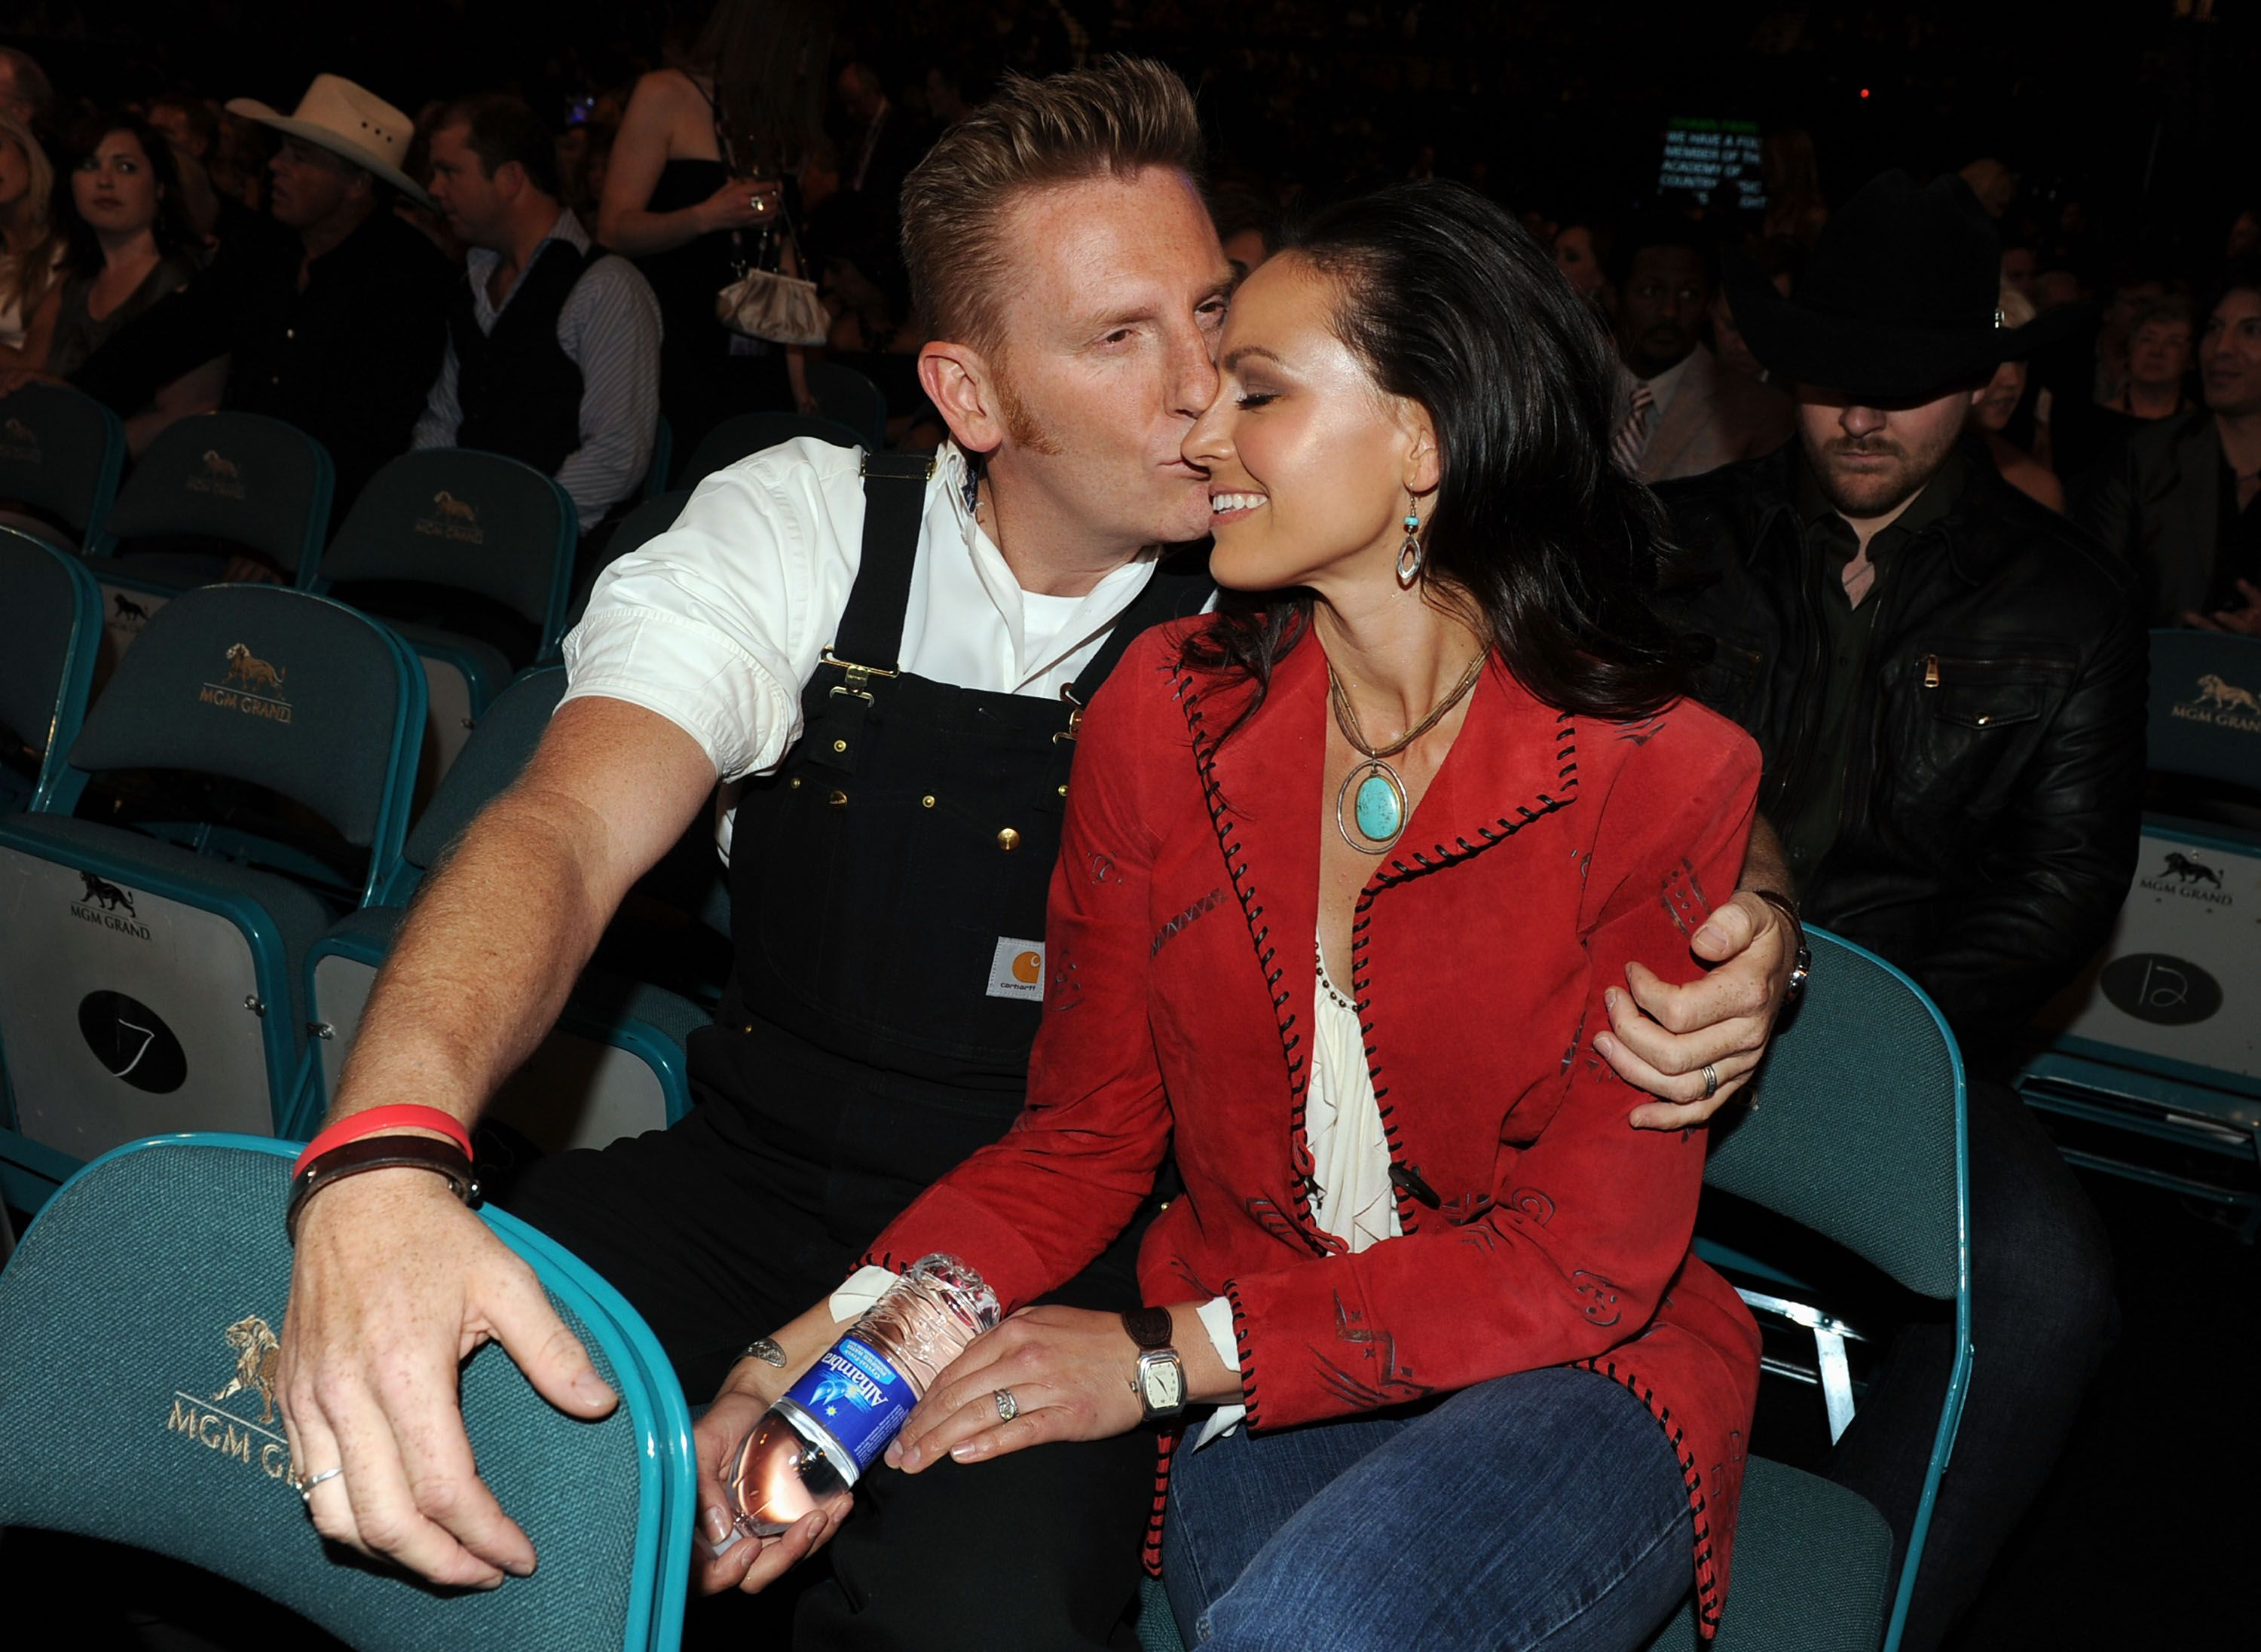 Rory Feek Will Perform for the First Time Without Joey - Rory and Joey